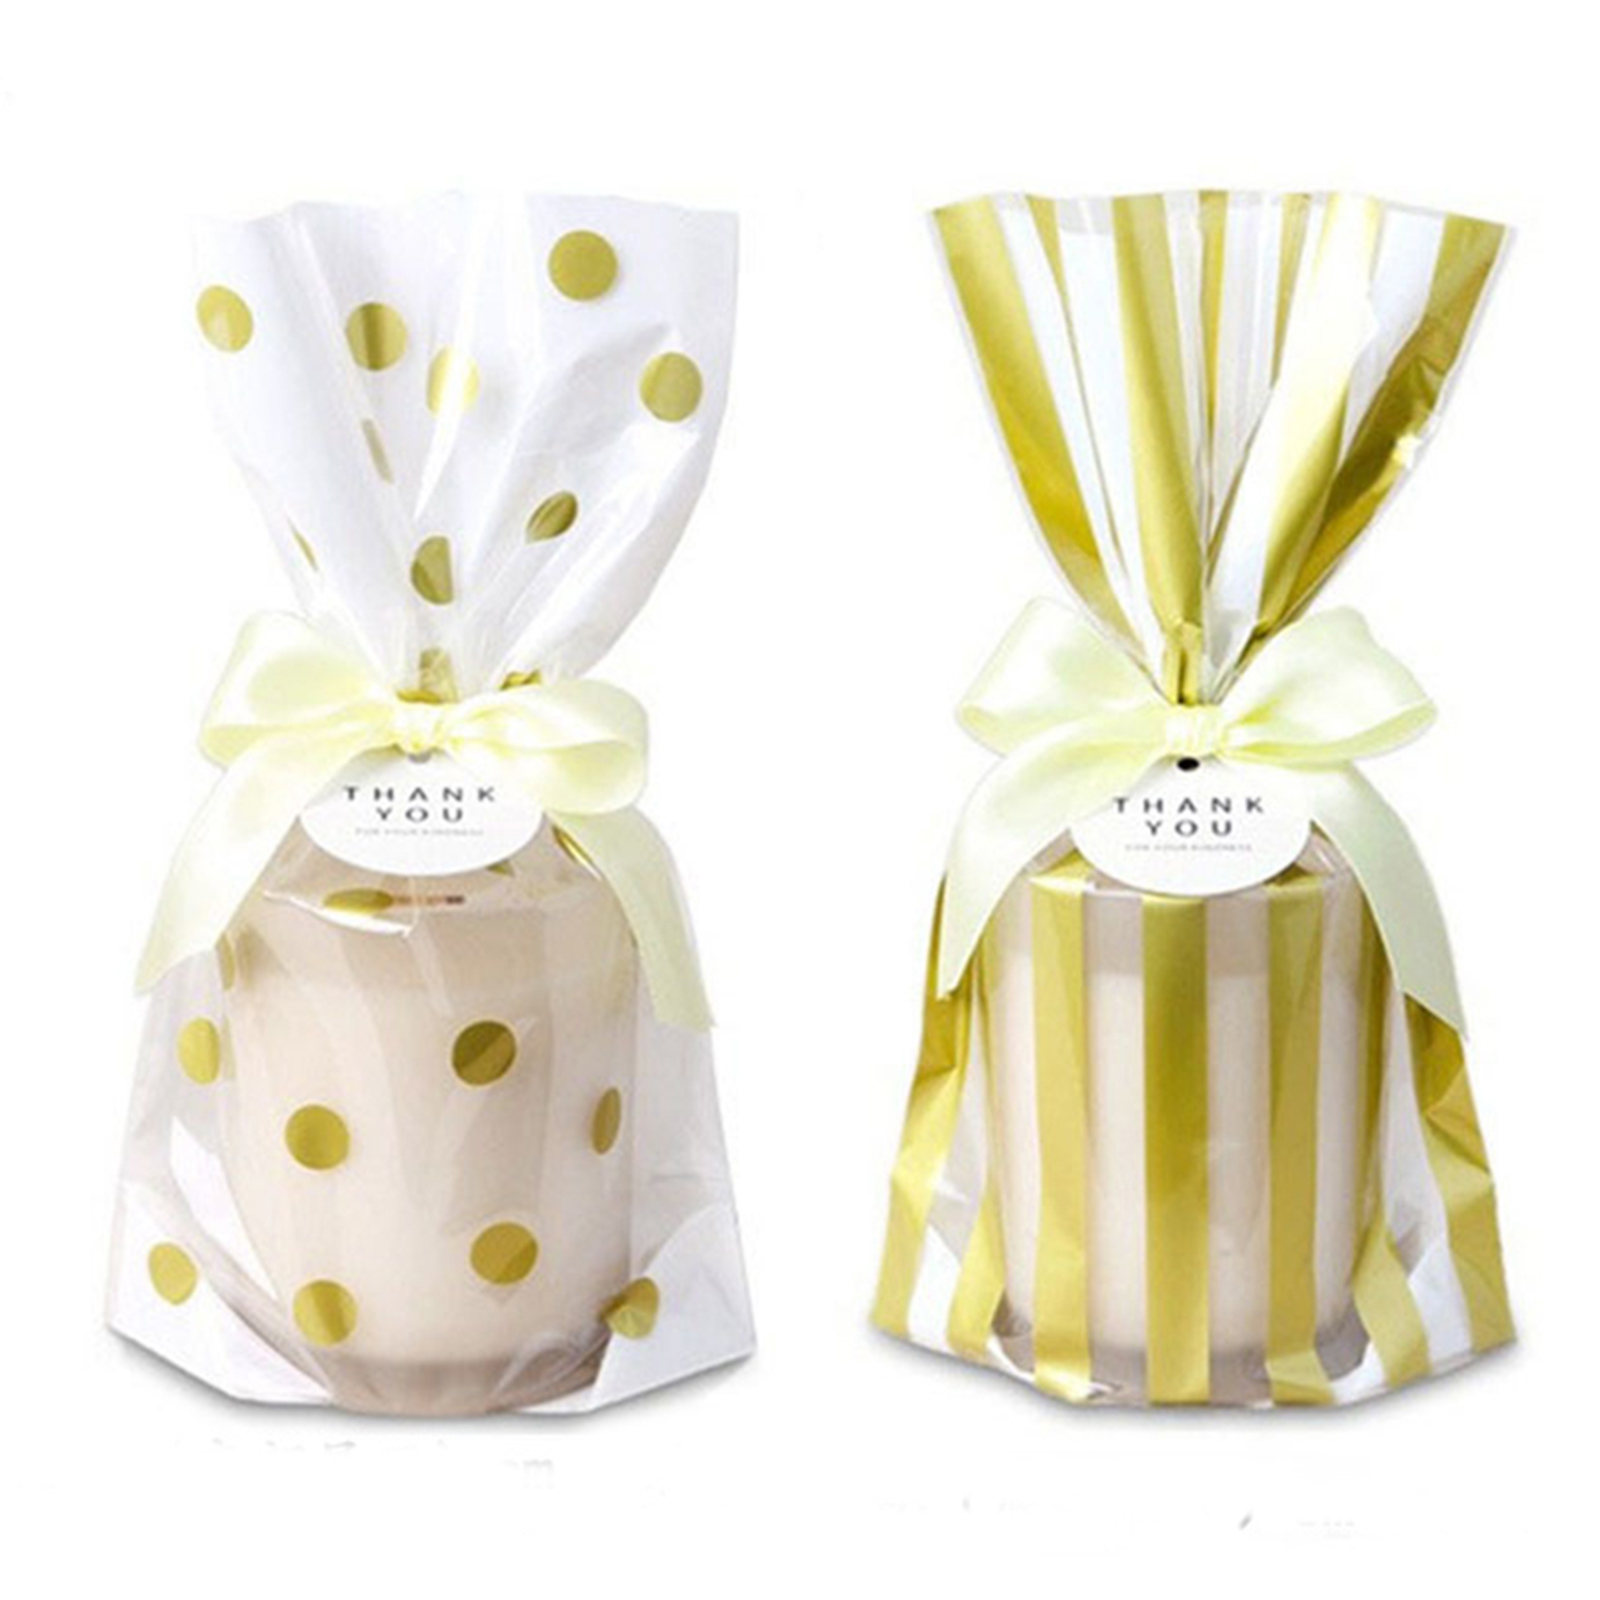 50PCS/lot Golden Dot Adhesive Bag Wedding Party Cookies Gift Food ...